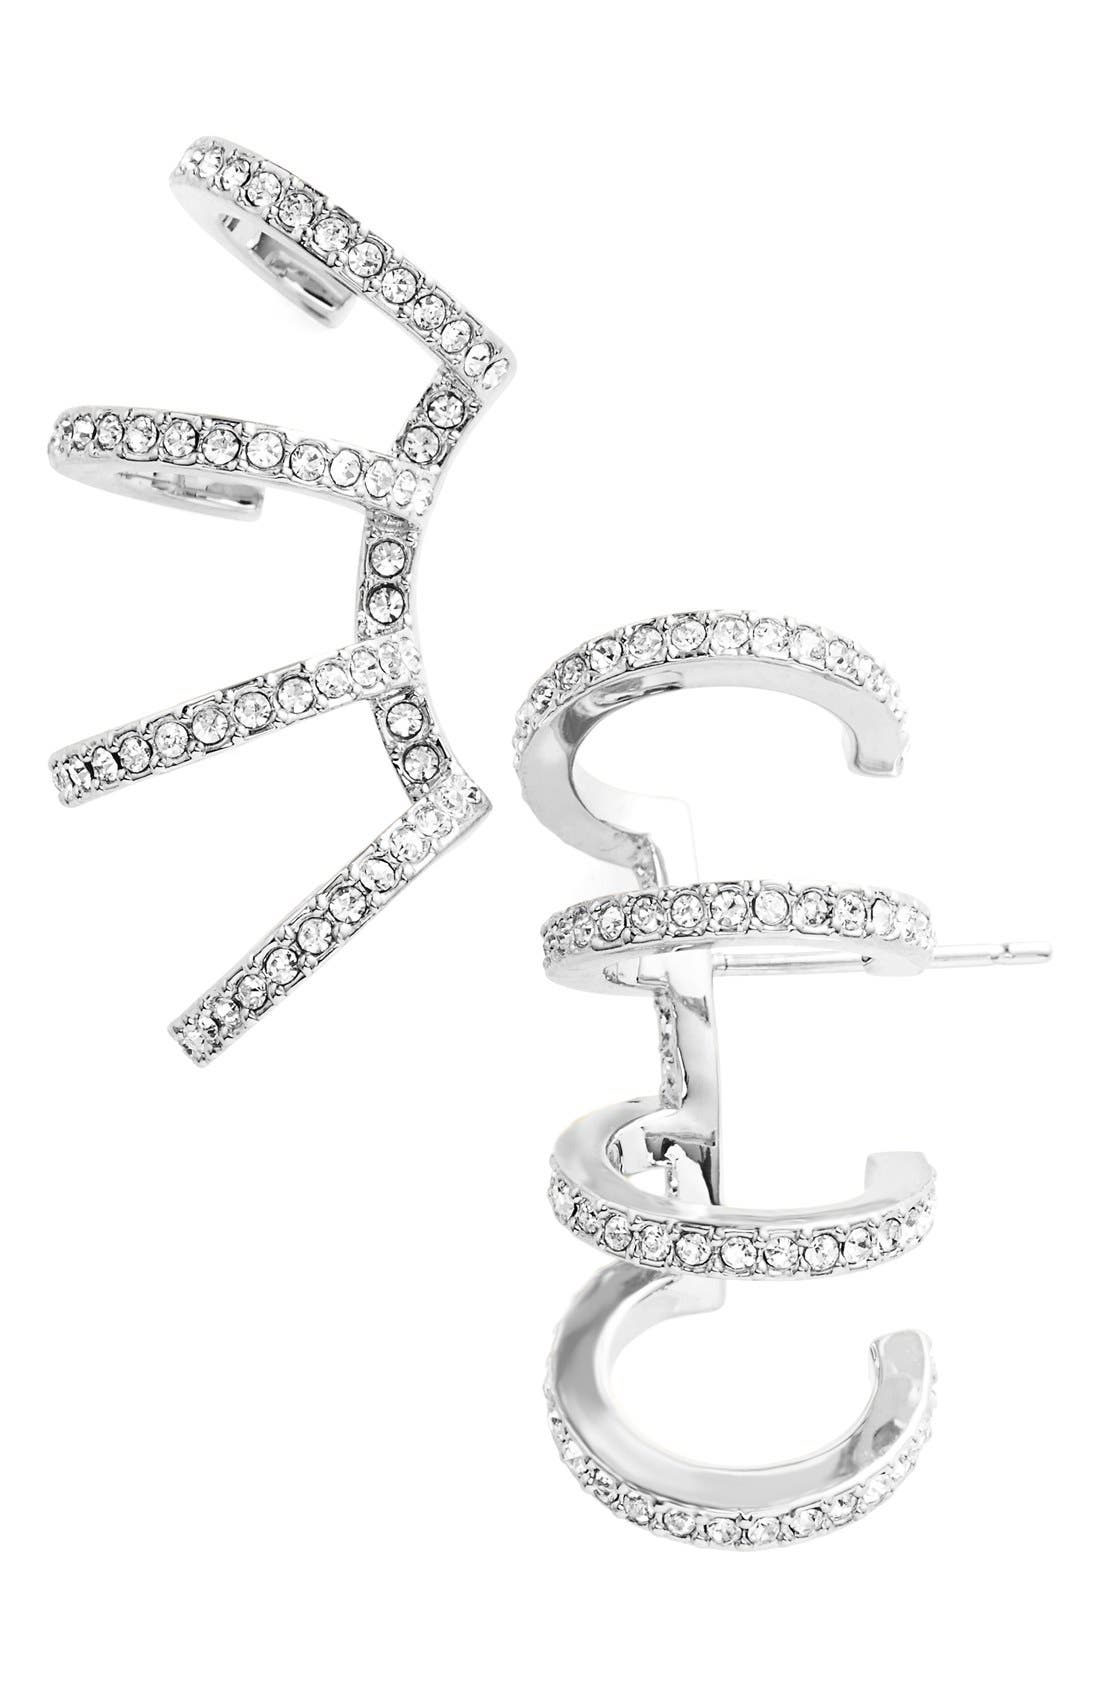 'Starry Night' Crystal Ear Crawlers,                             Main thumbnail 1, color,                             SILVER/ CLEAR